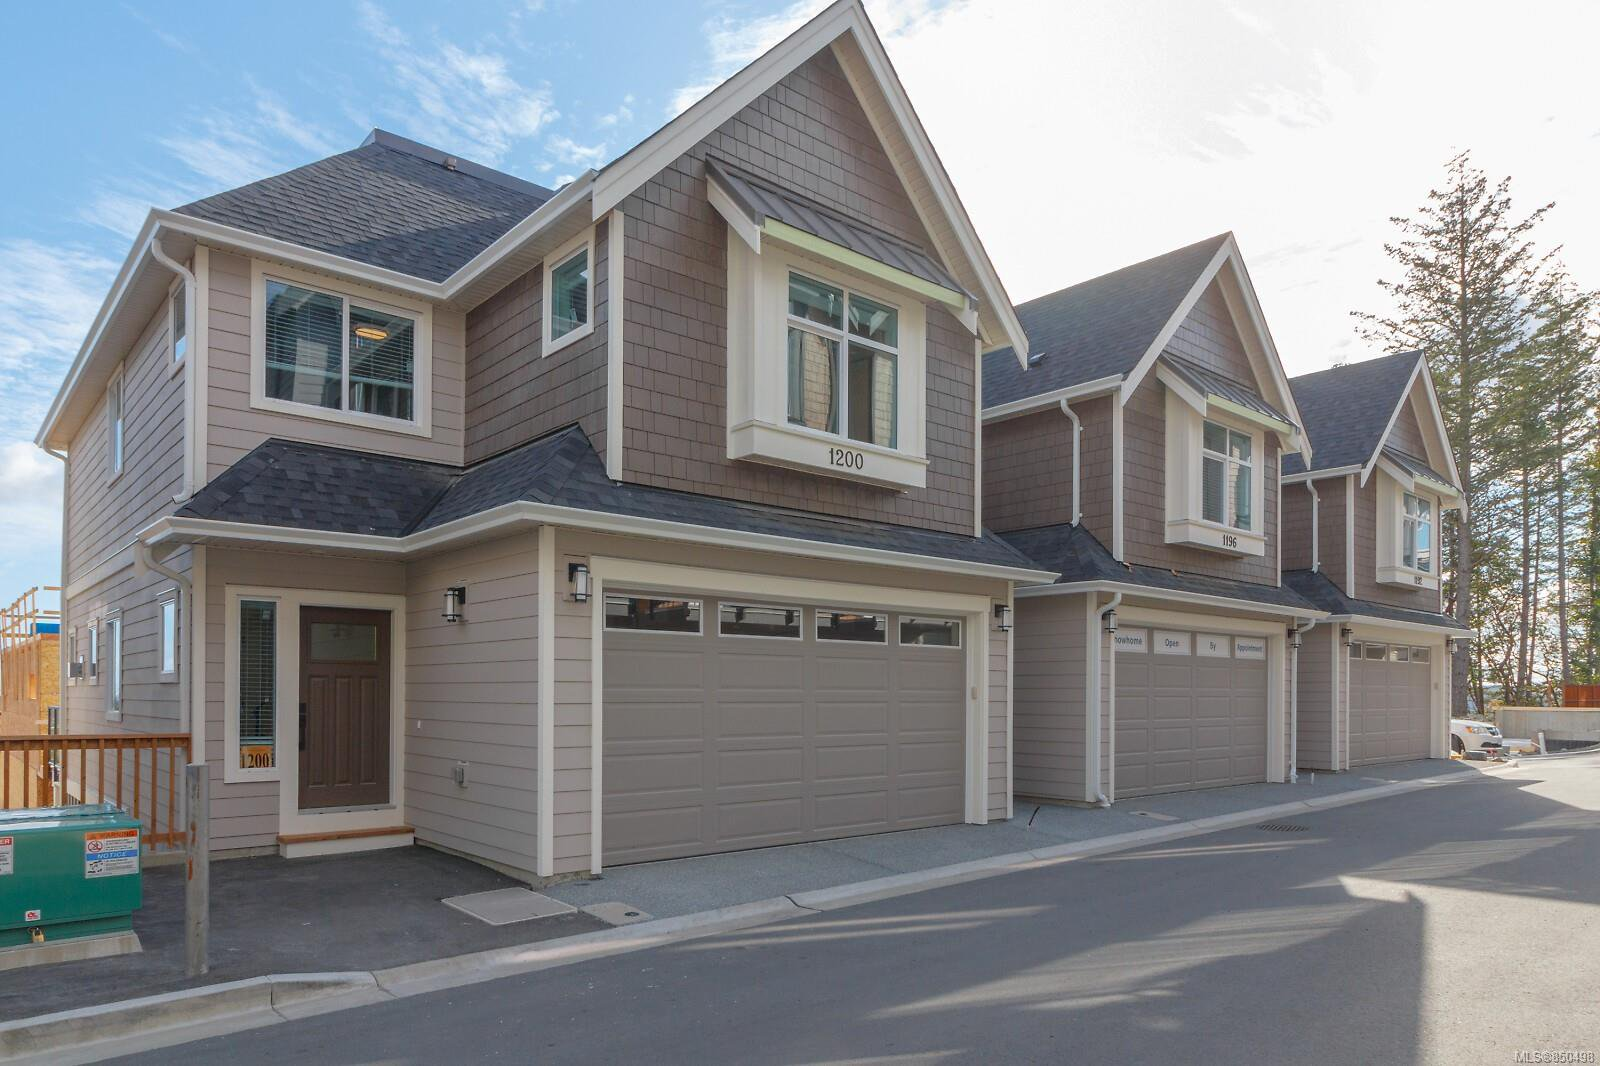 Main Photo: 1220 Moonstone Loop in : La Bear Mountain Row/Townhouse for sale (Langford)  : MLS®# 850498